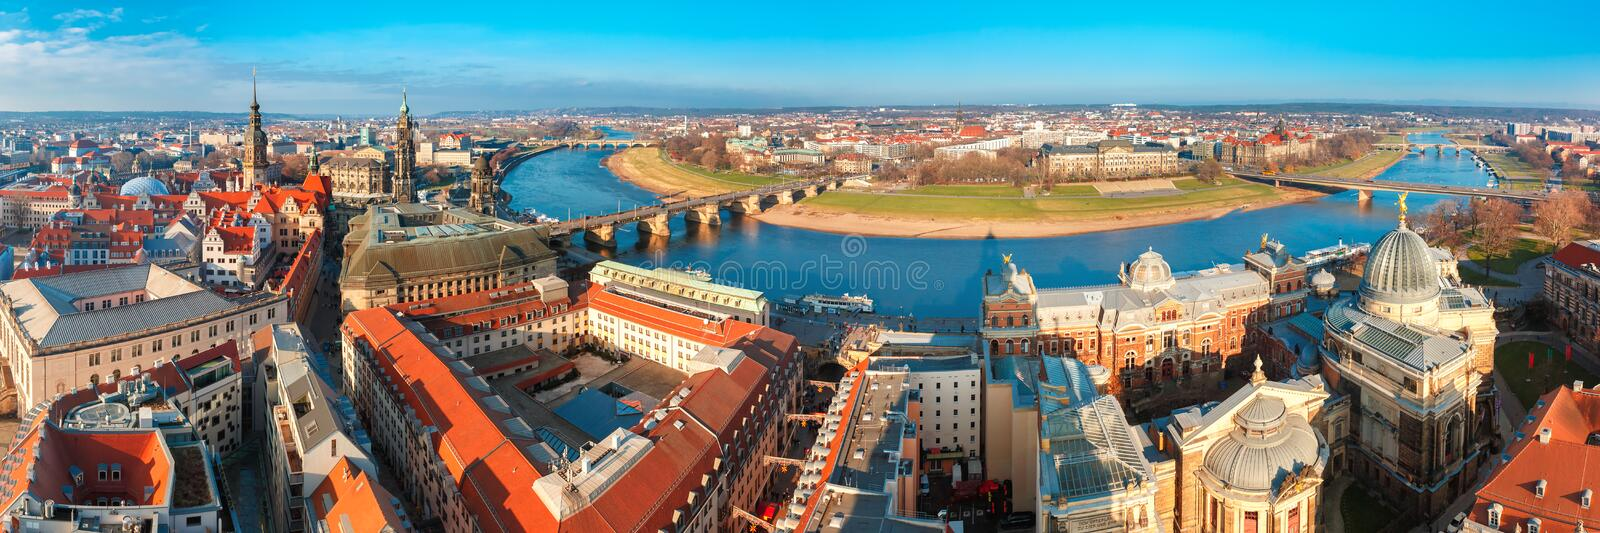 Panorama of Old town and Elbe, Dresden, Germany stock image